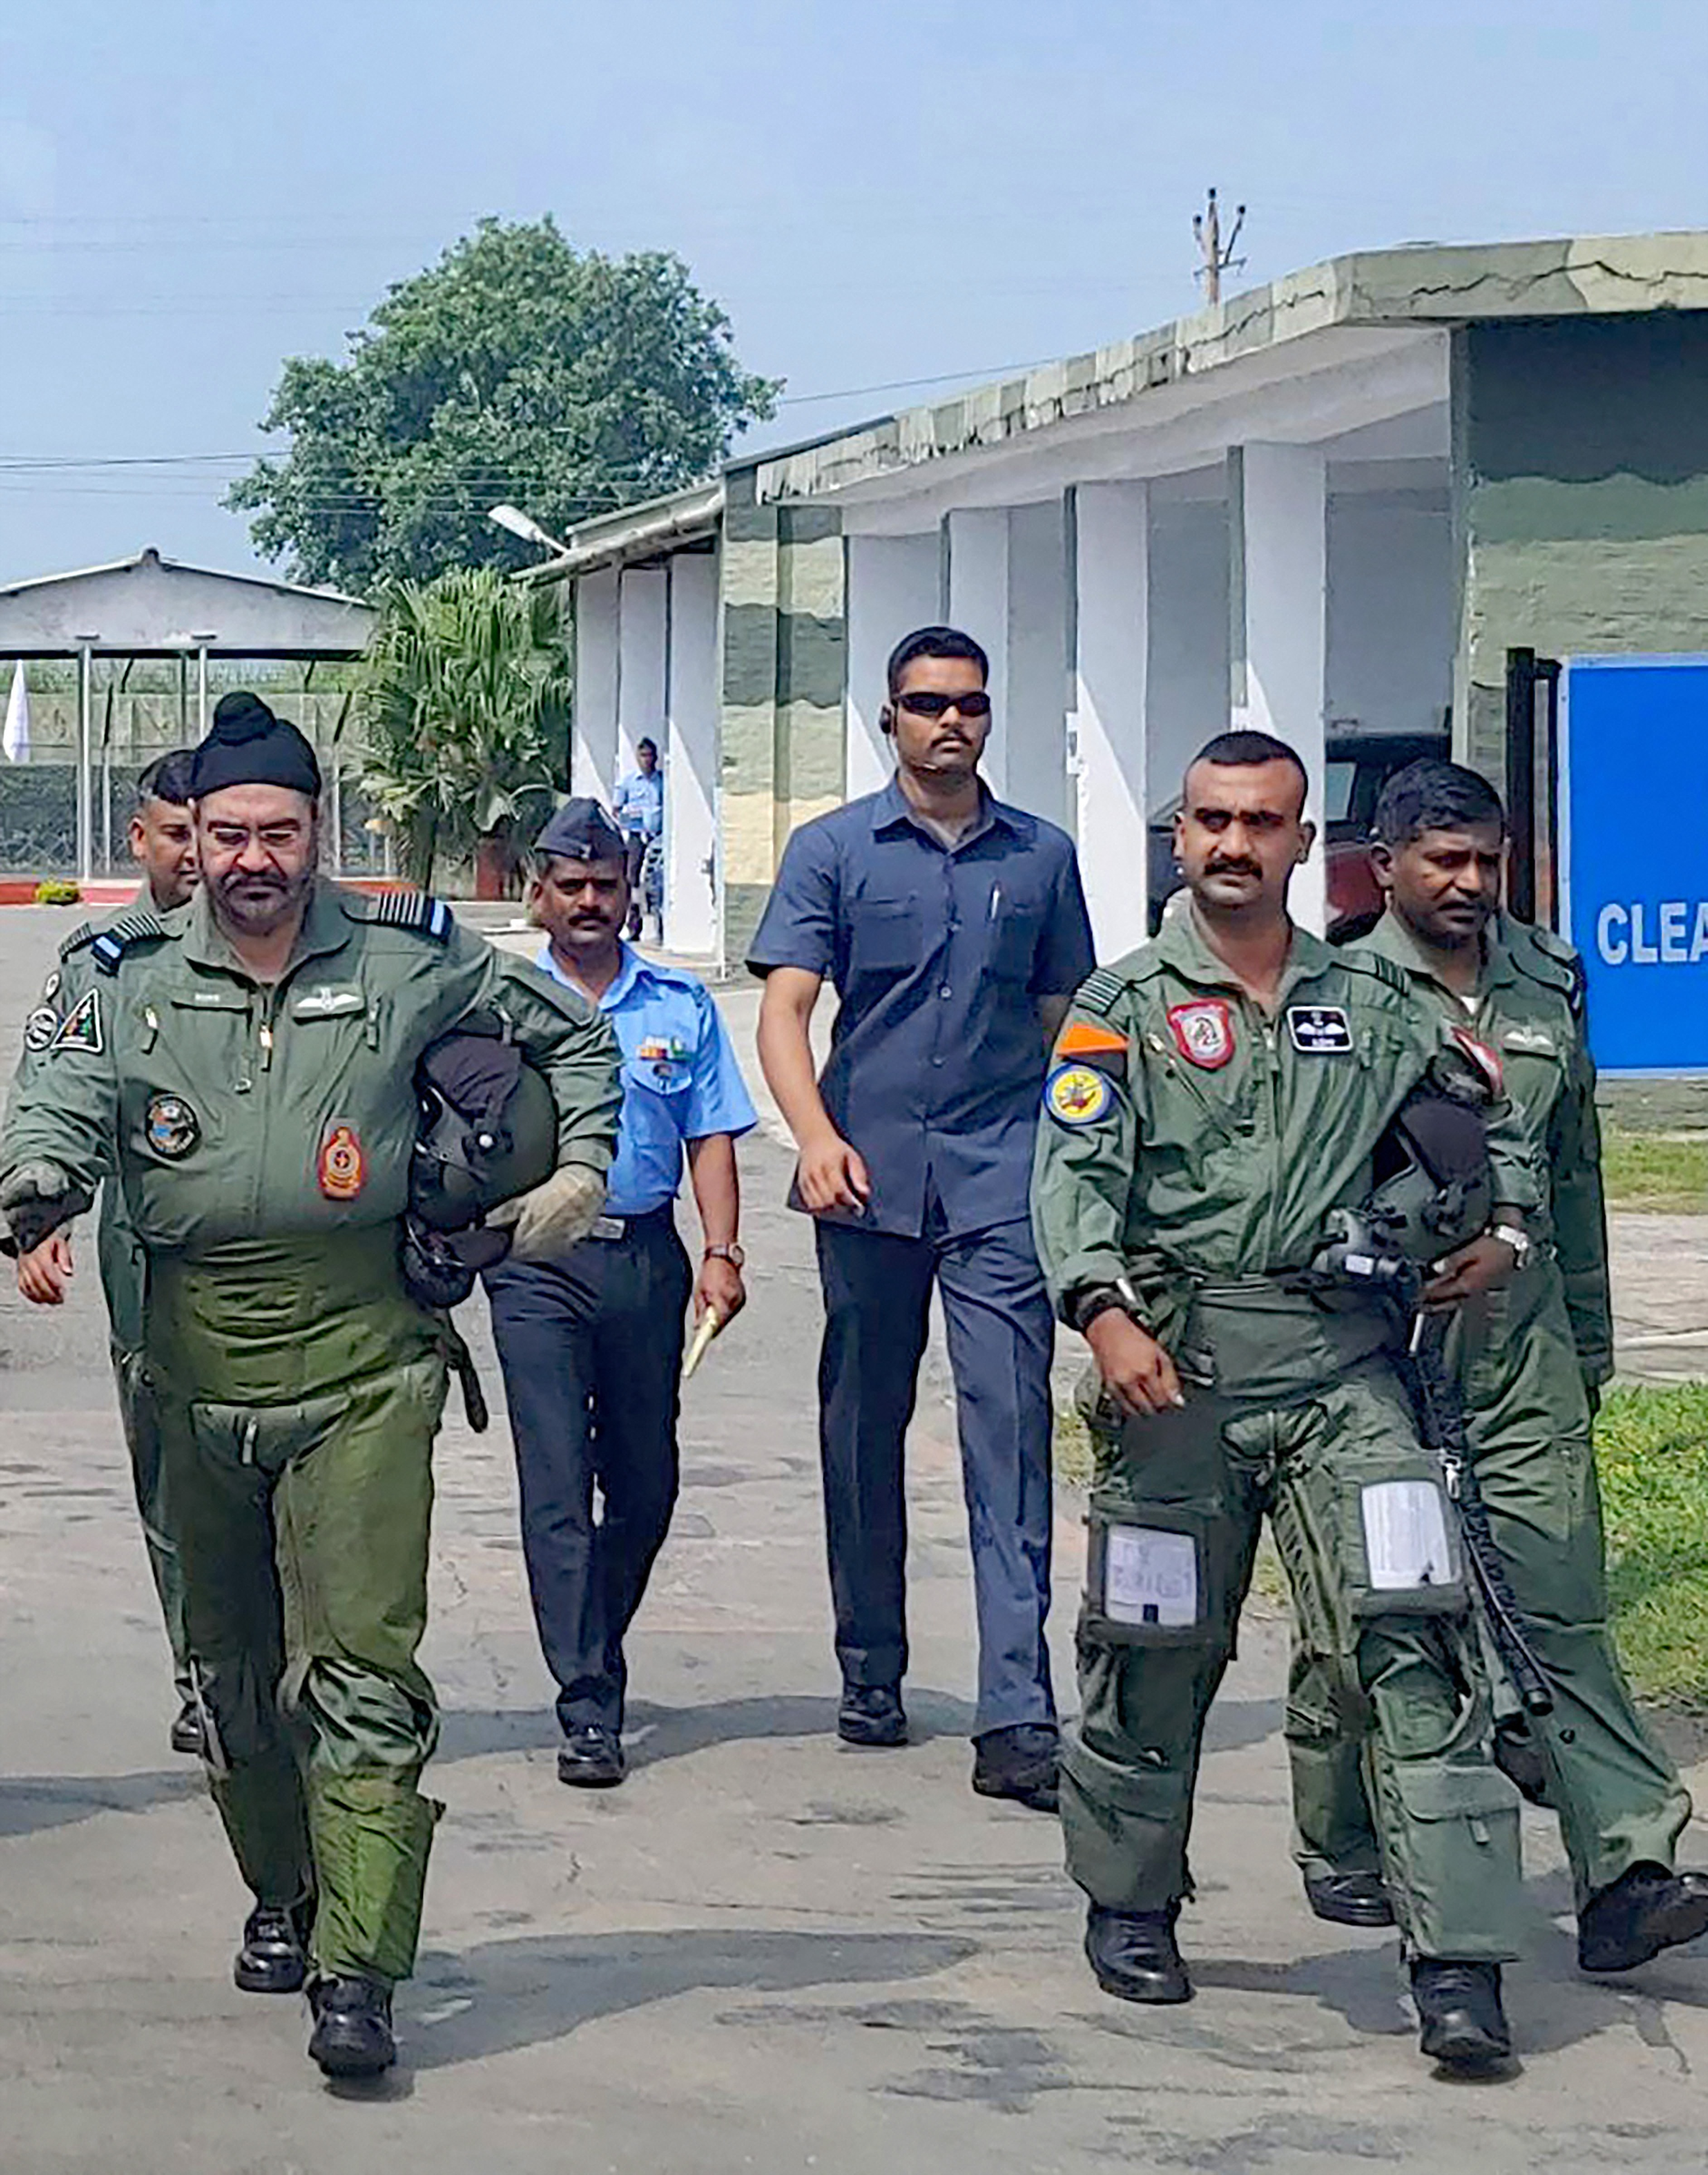 Pathankot: Air Chief Marshal BS Dhanoa and Wing Commander Abhinandan Varthaman, the IAF pilot who became the face of a tense military confrontation between India and Pakistan in February, before a sortie on the MiG 21 jet, at Airforce Station, Pathankot.